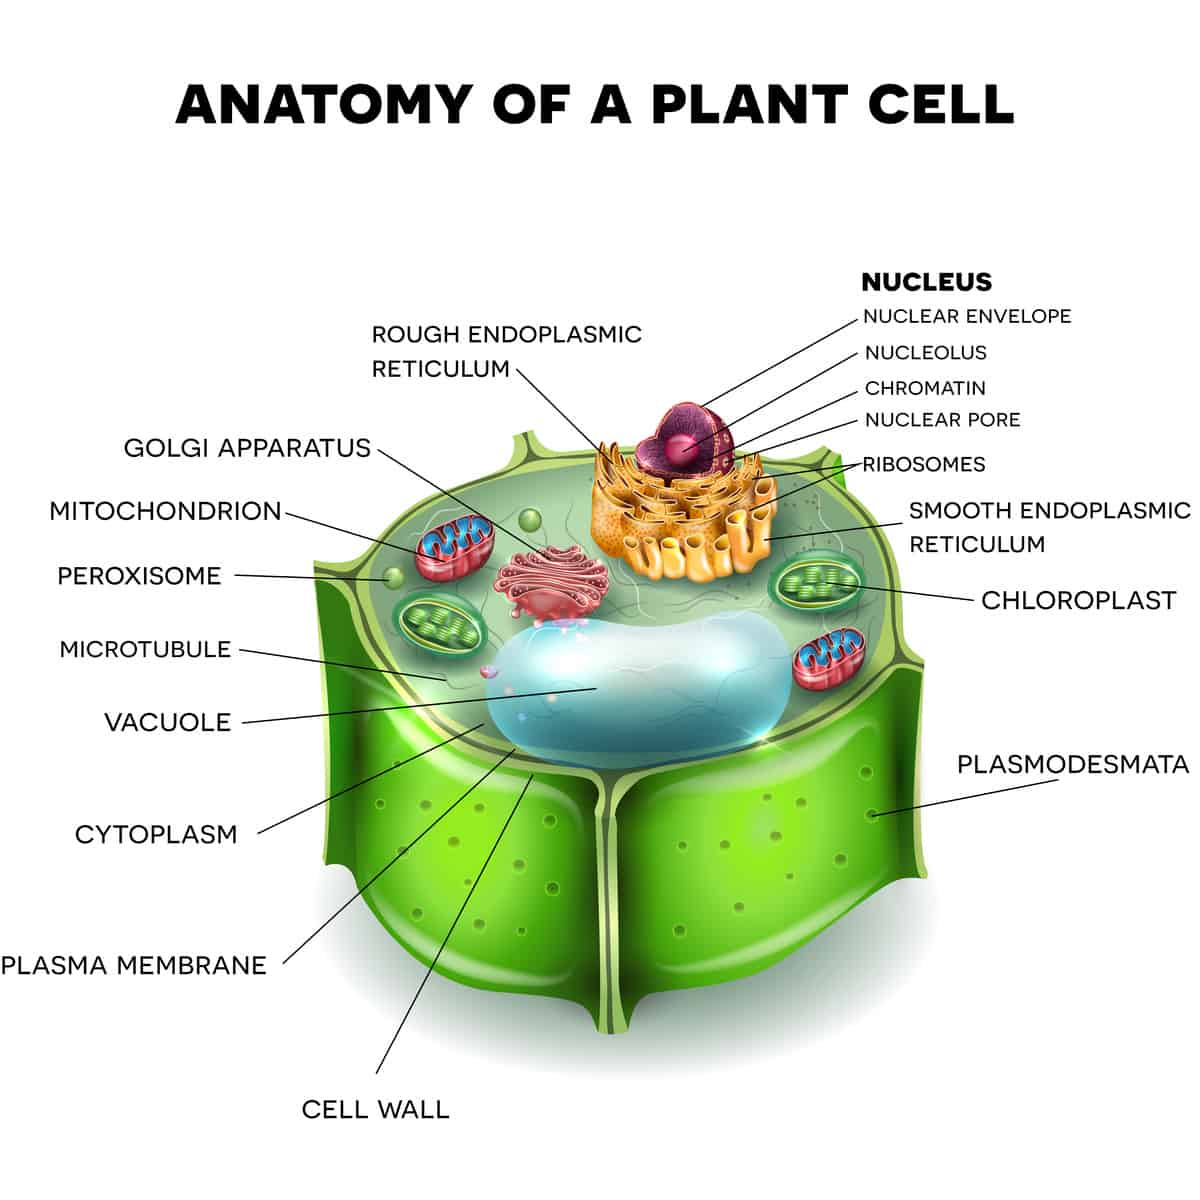 hight resolution of illustration of a plant cell